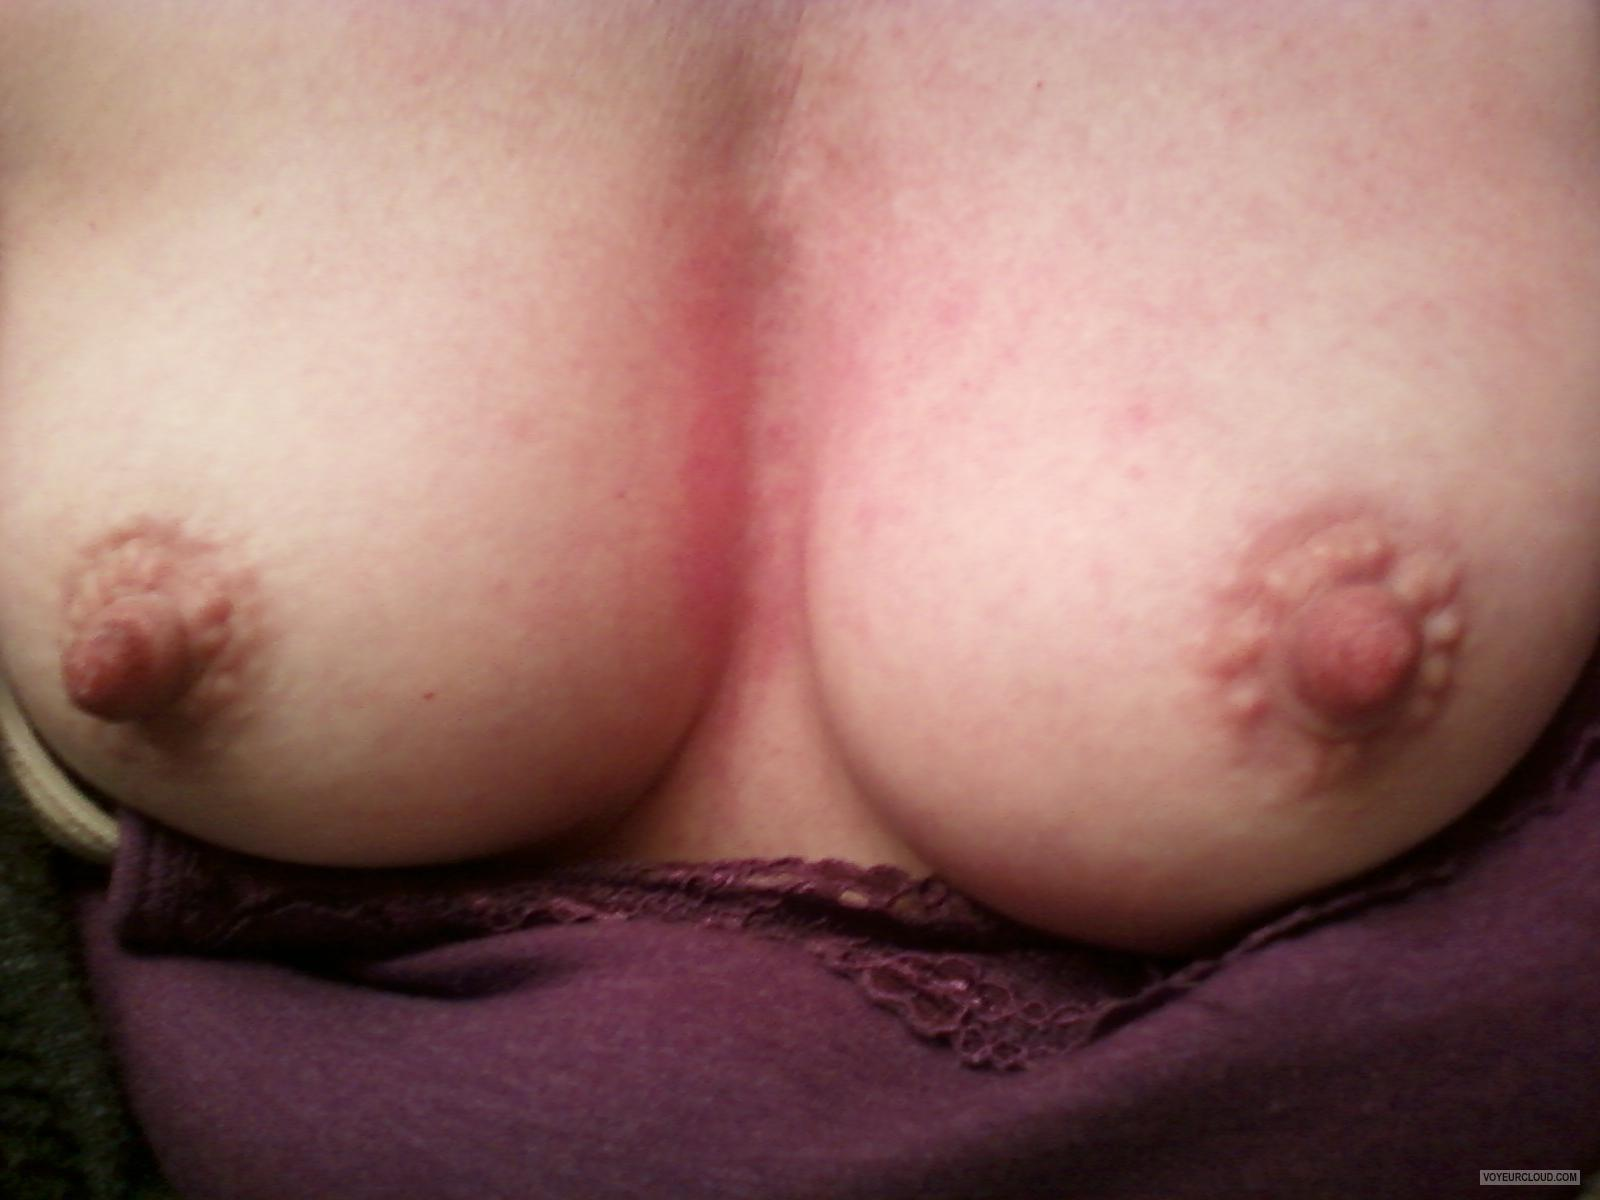 Tit Flash: Wife's Small Tits (Selfie) - Lan from Canada